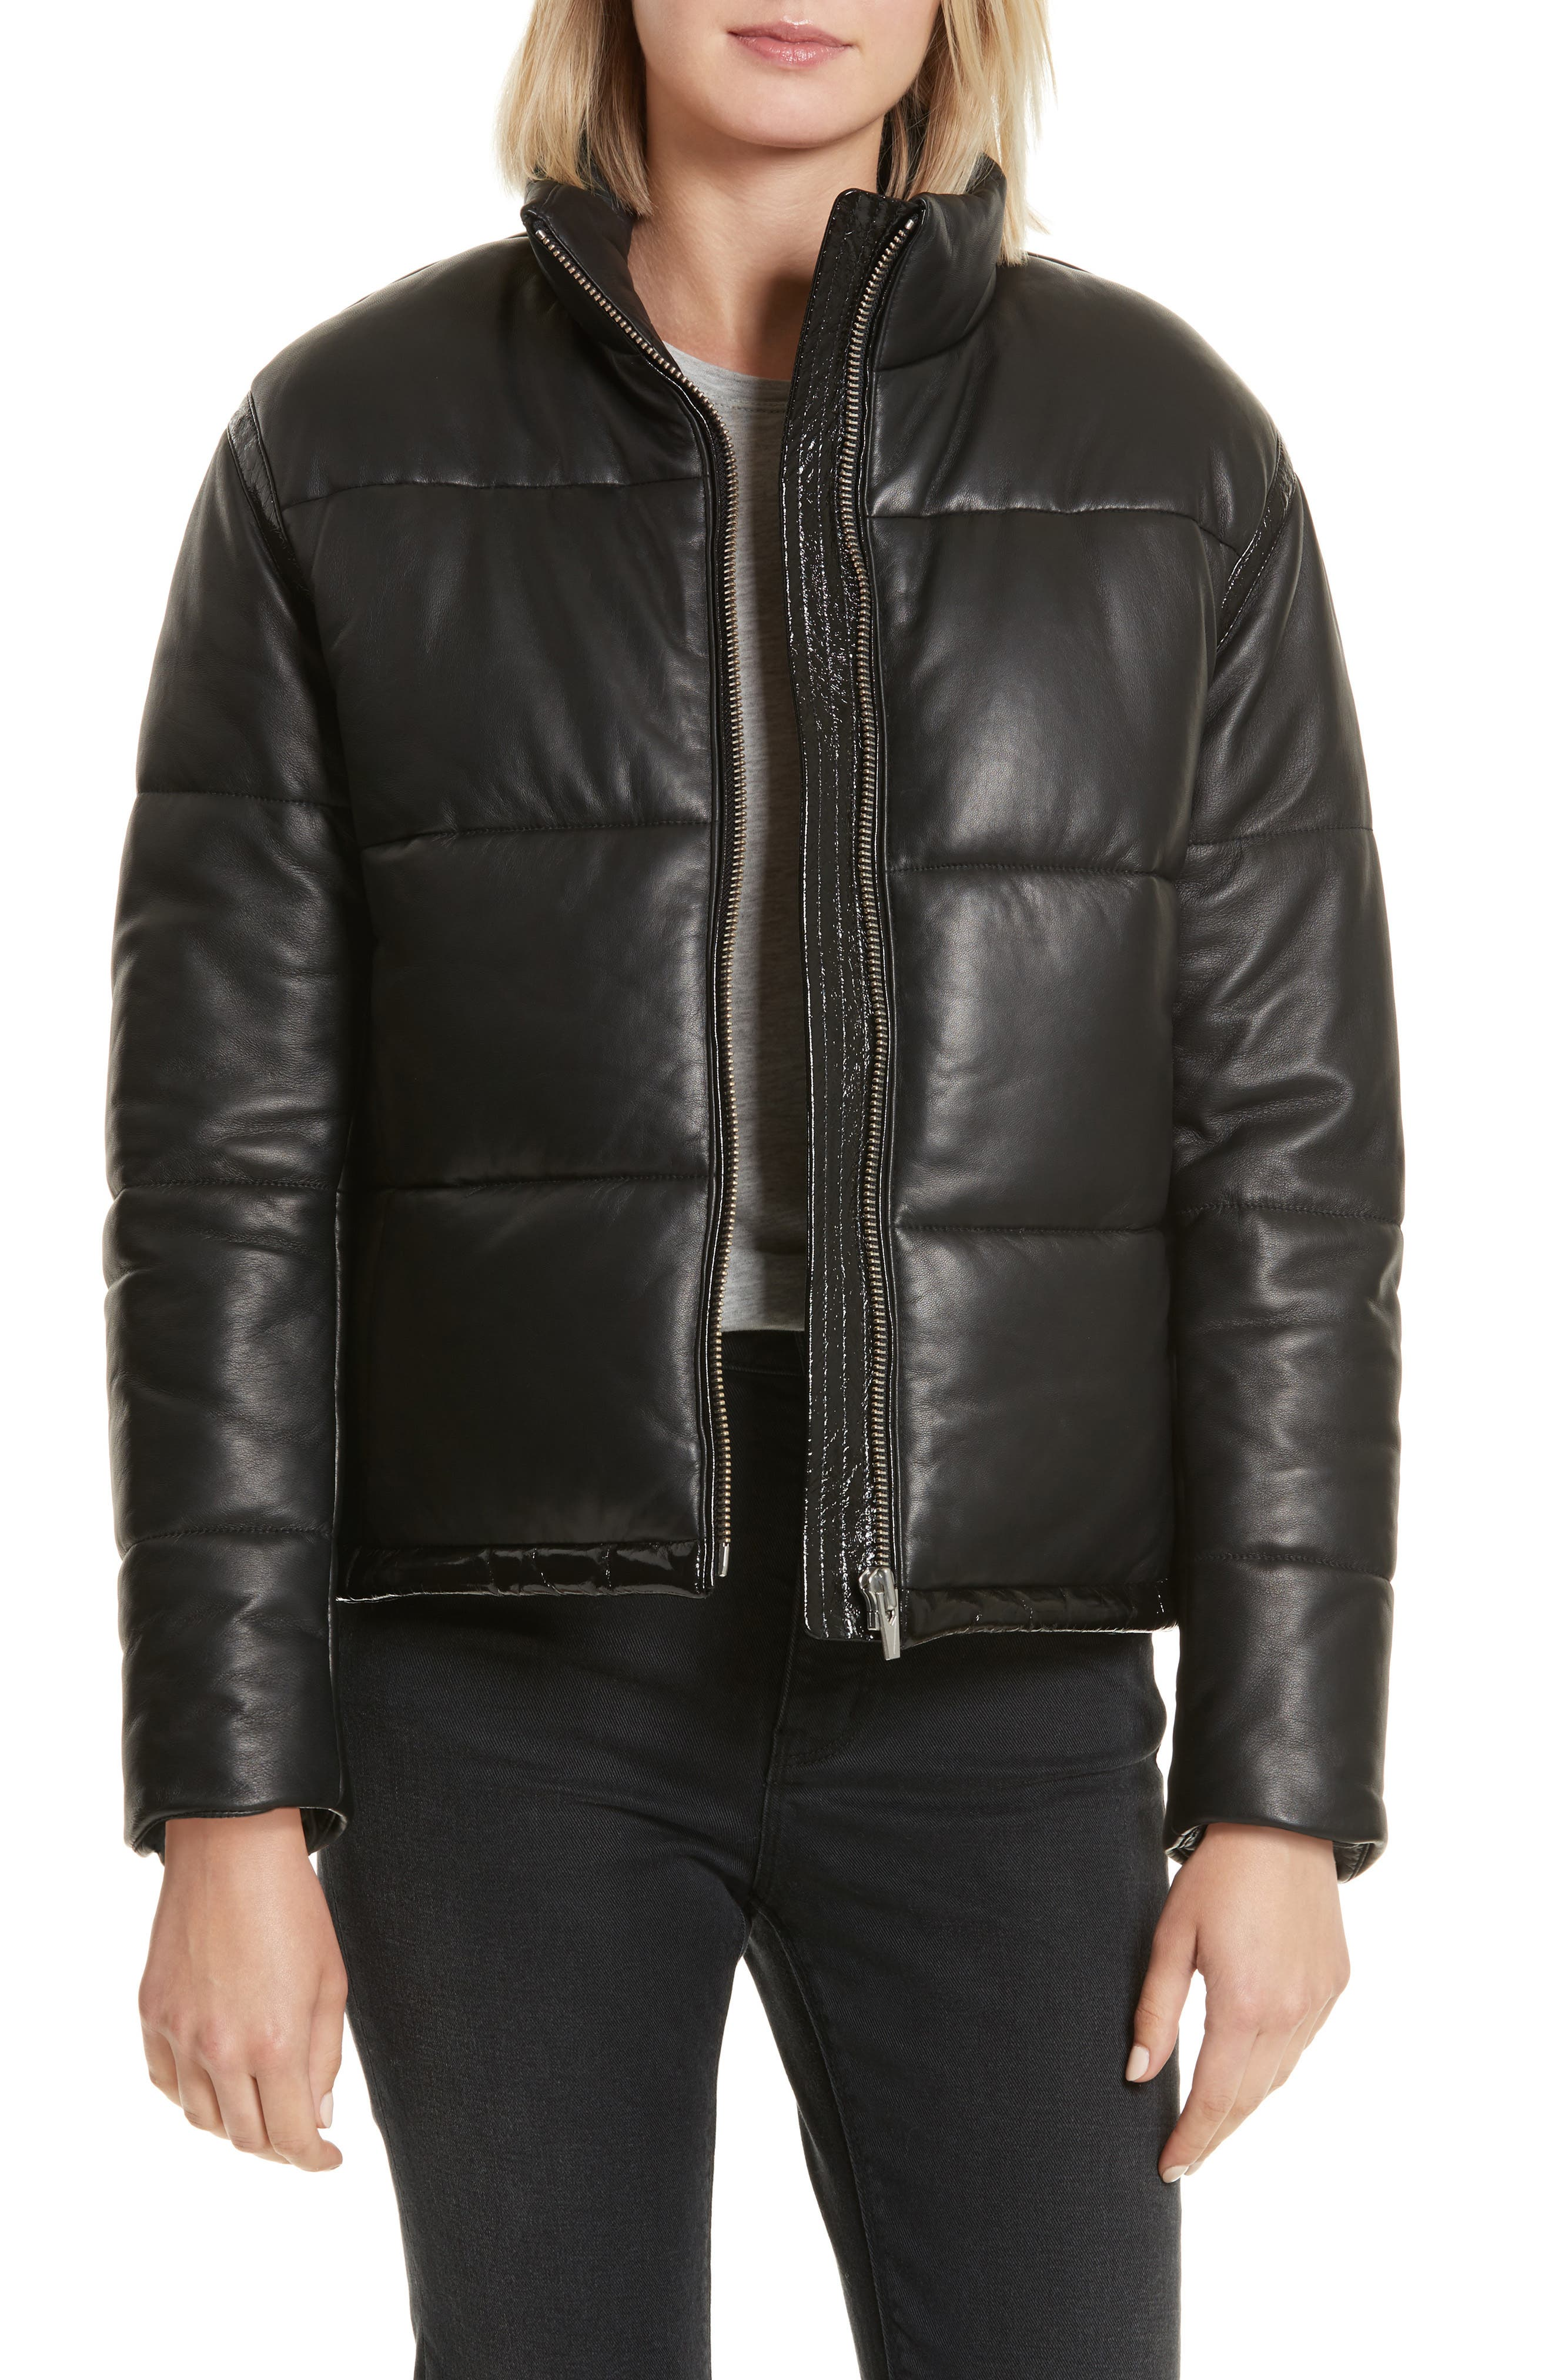 Power Puff Leather Jacket,                         Main,                         color, 001